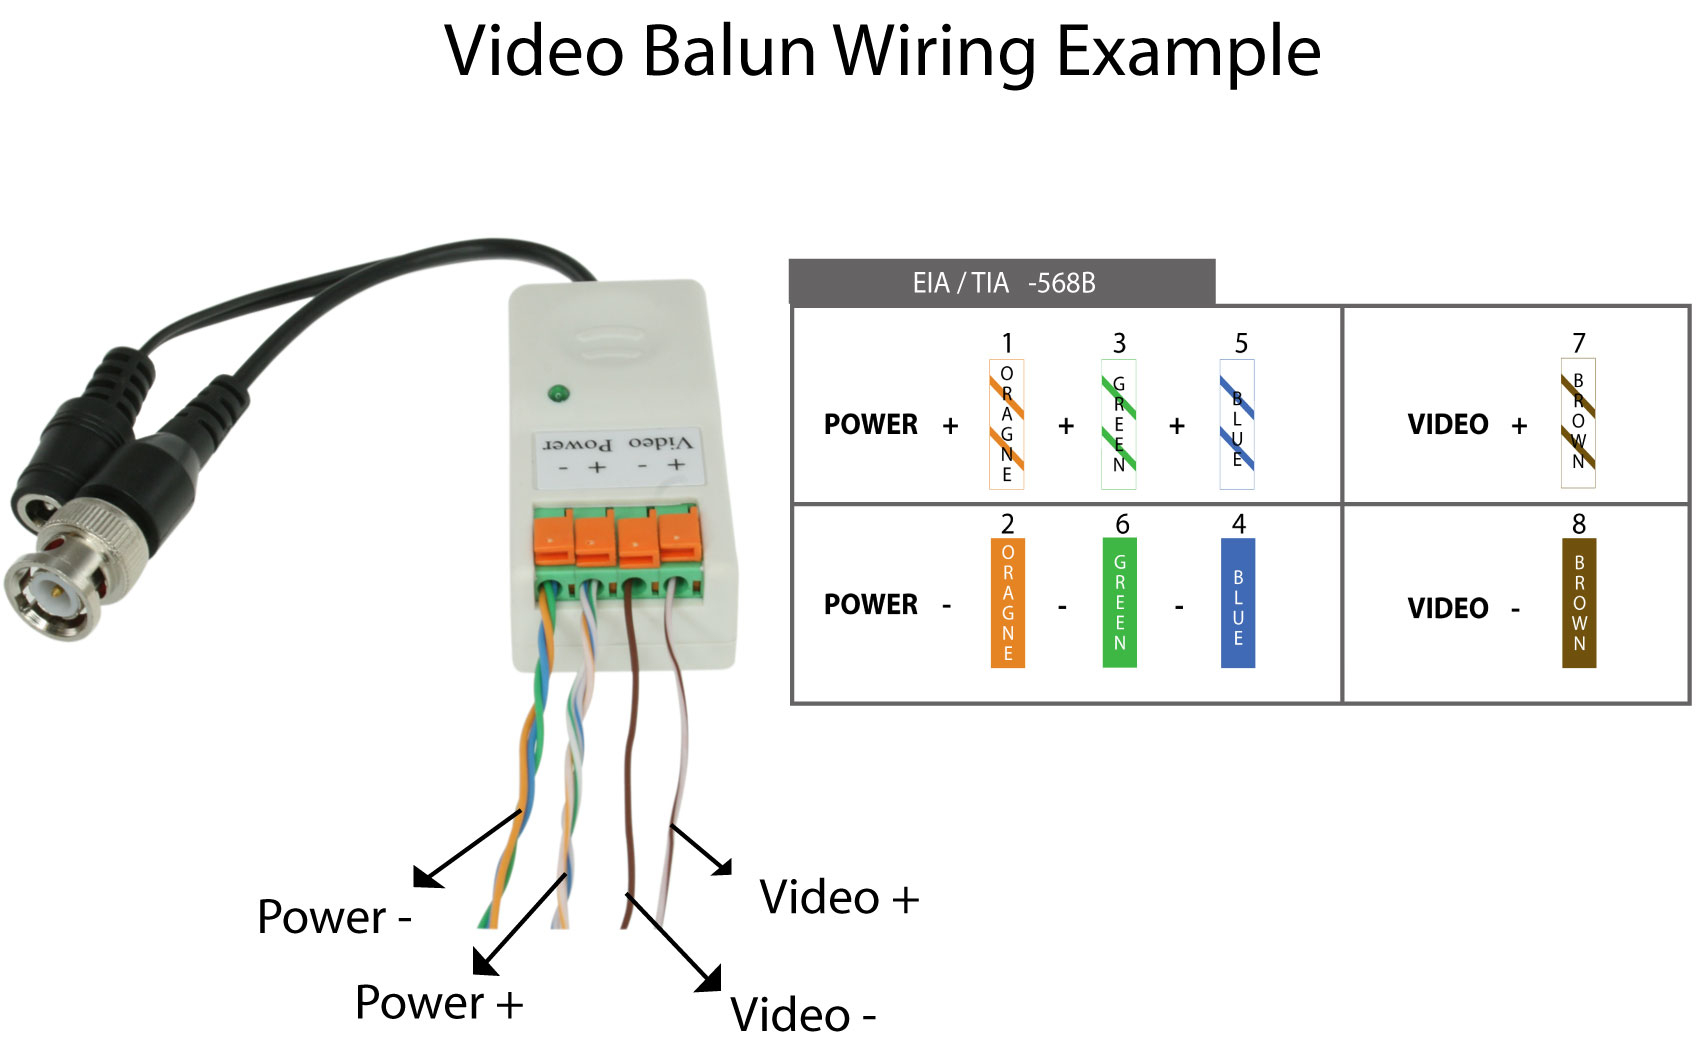 Usb Serial Rj45 Wiring Diagram | Wiring Diagram - Usb To Serial Adapter Wiring Diagram